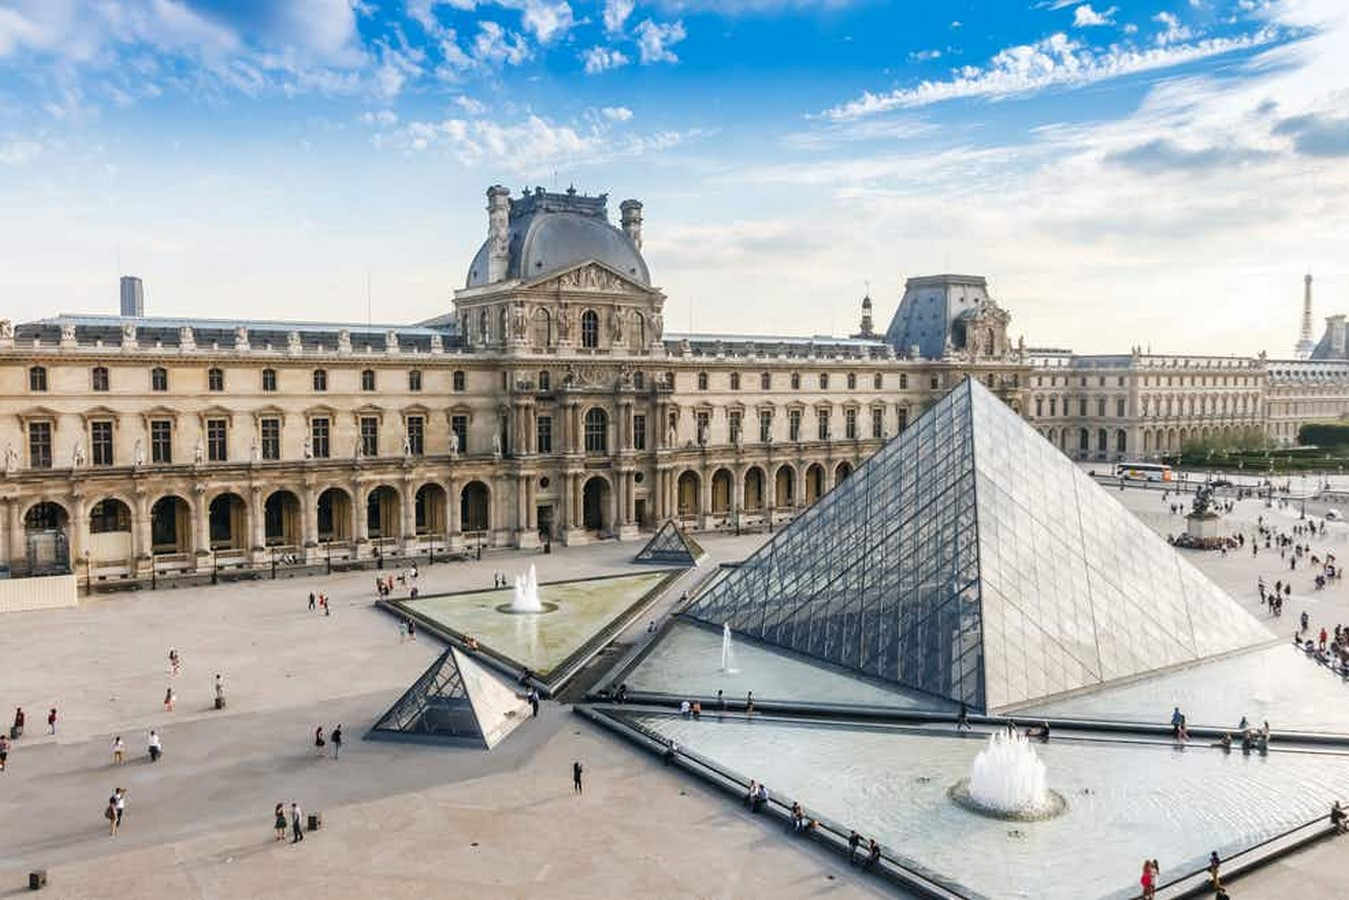 10 Things you did not know about Louvre Pyramid by I.M. Pei - sHEET4